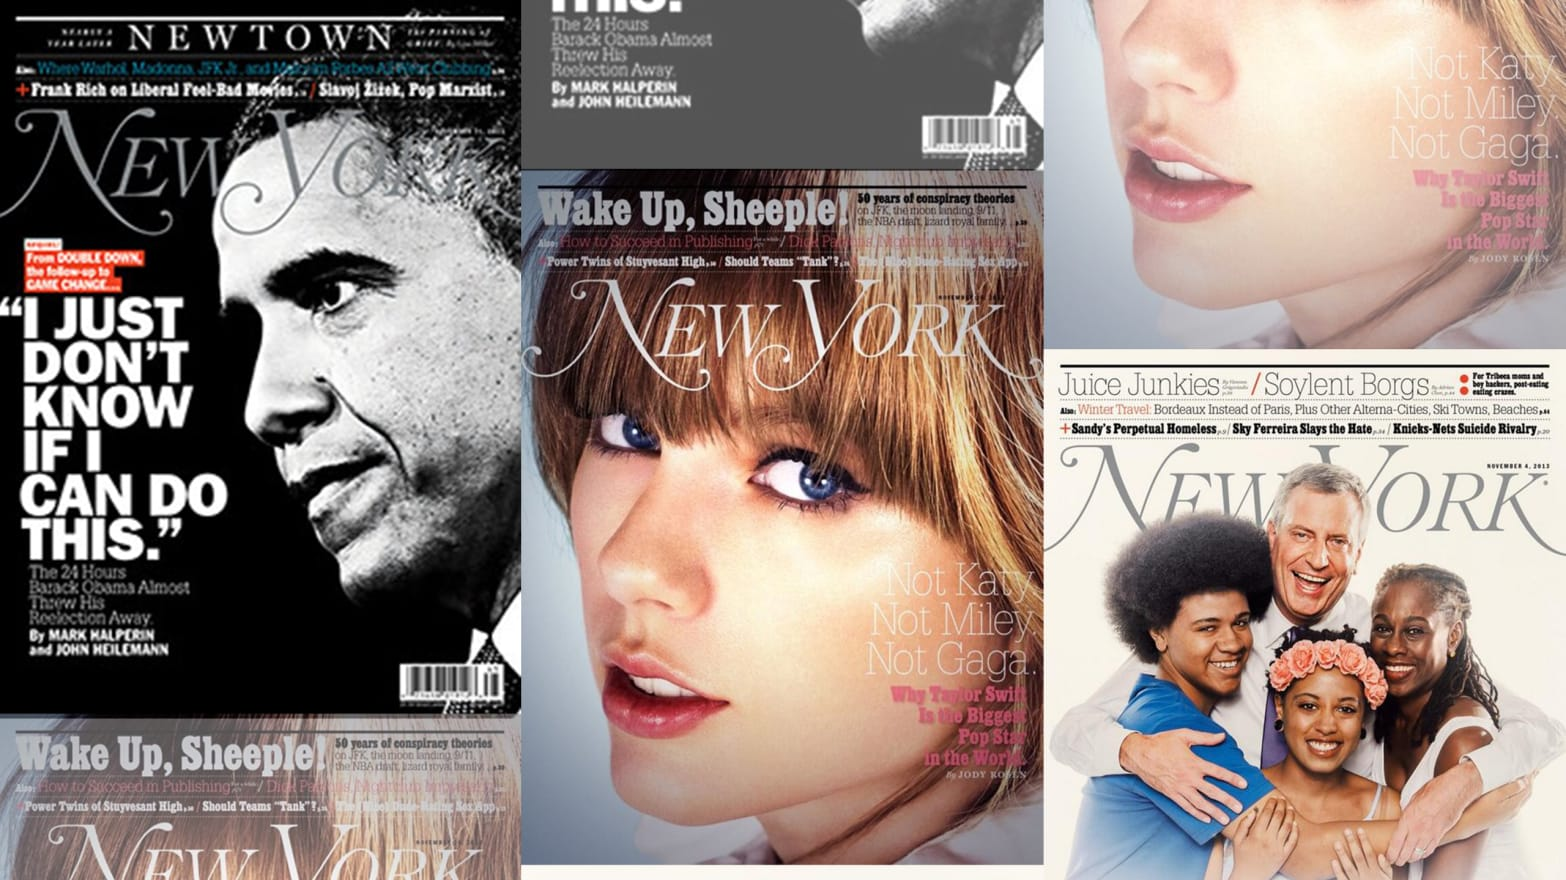 New York' Mag & the Cruel Double Meaning of 'Biweekly'